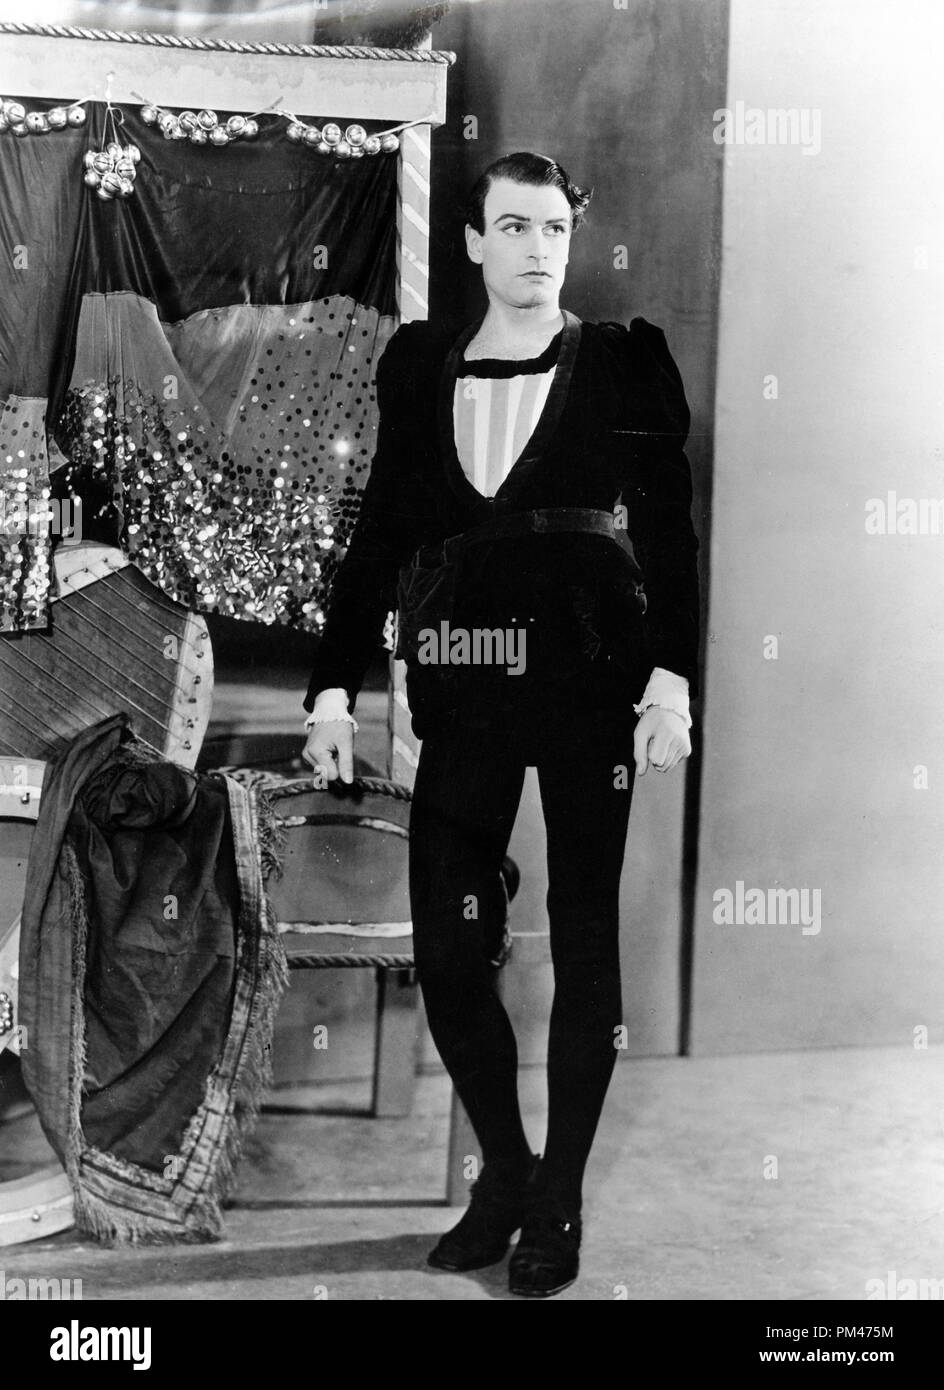 Laurence Olivier in character for the stage version of 'Hamlet' 1936.  File Reference # 1104_003THA - Stock Image